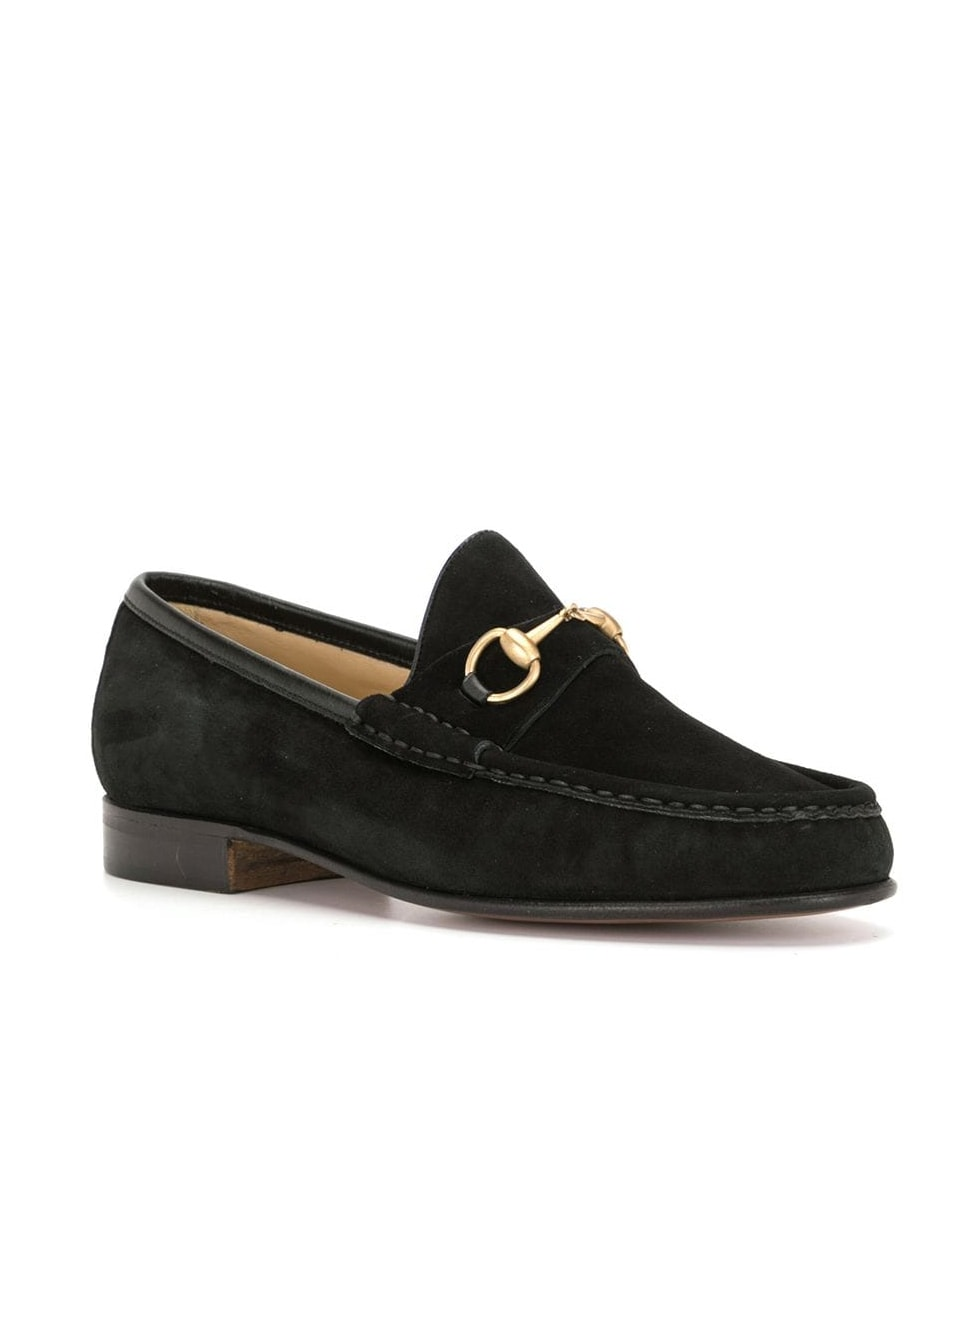 Gucci Pre-Owned 2000s Horsebit detail loafers